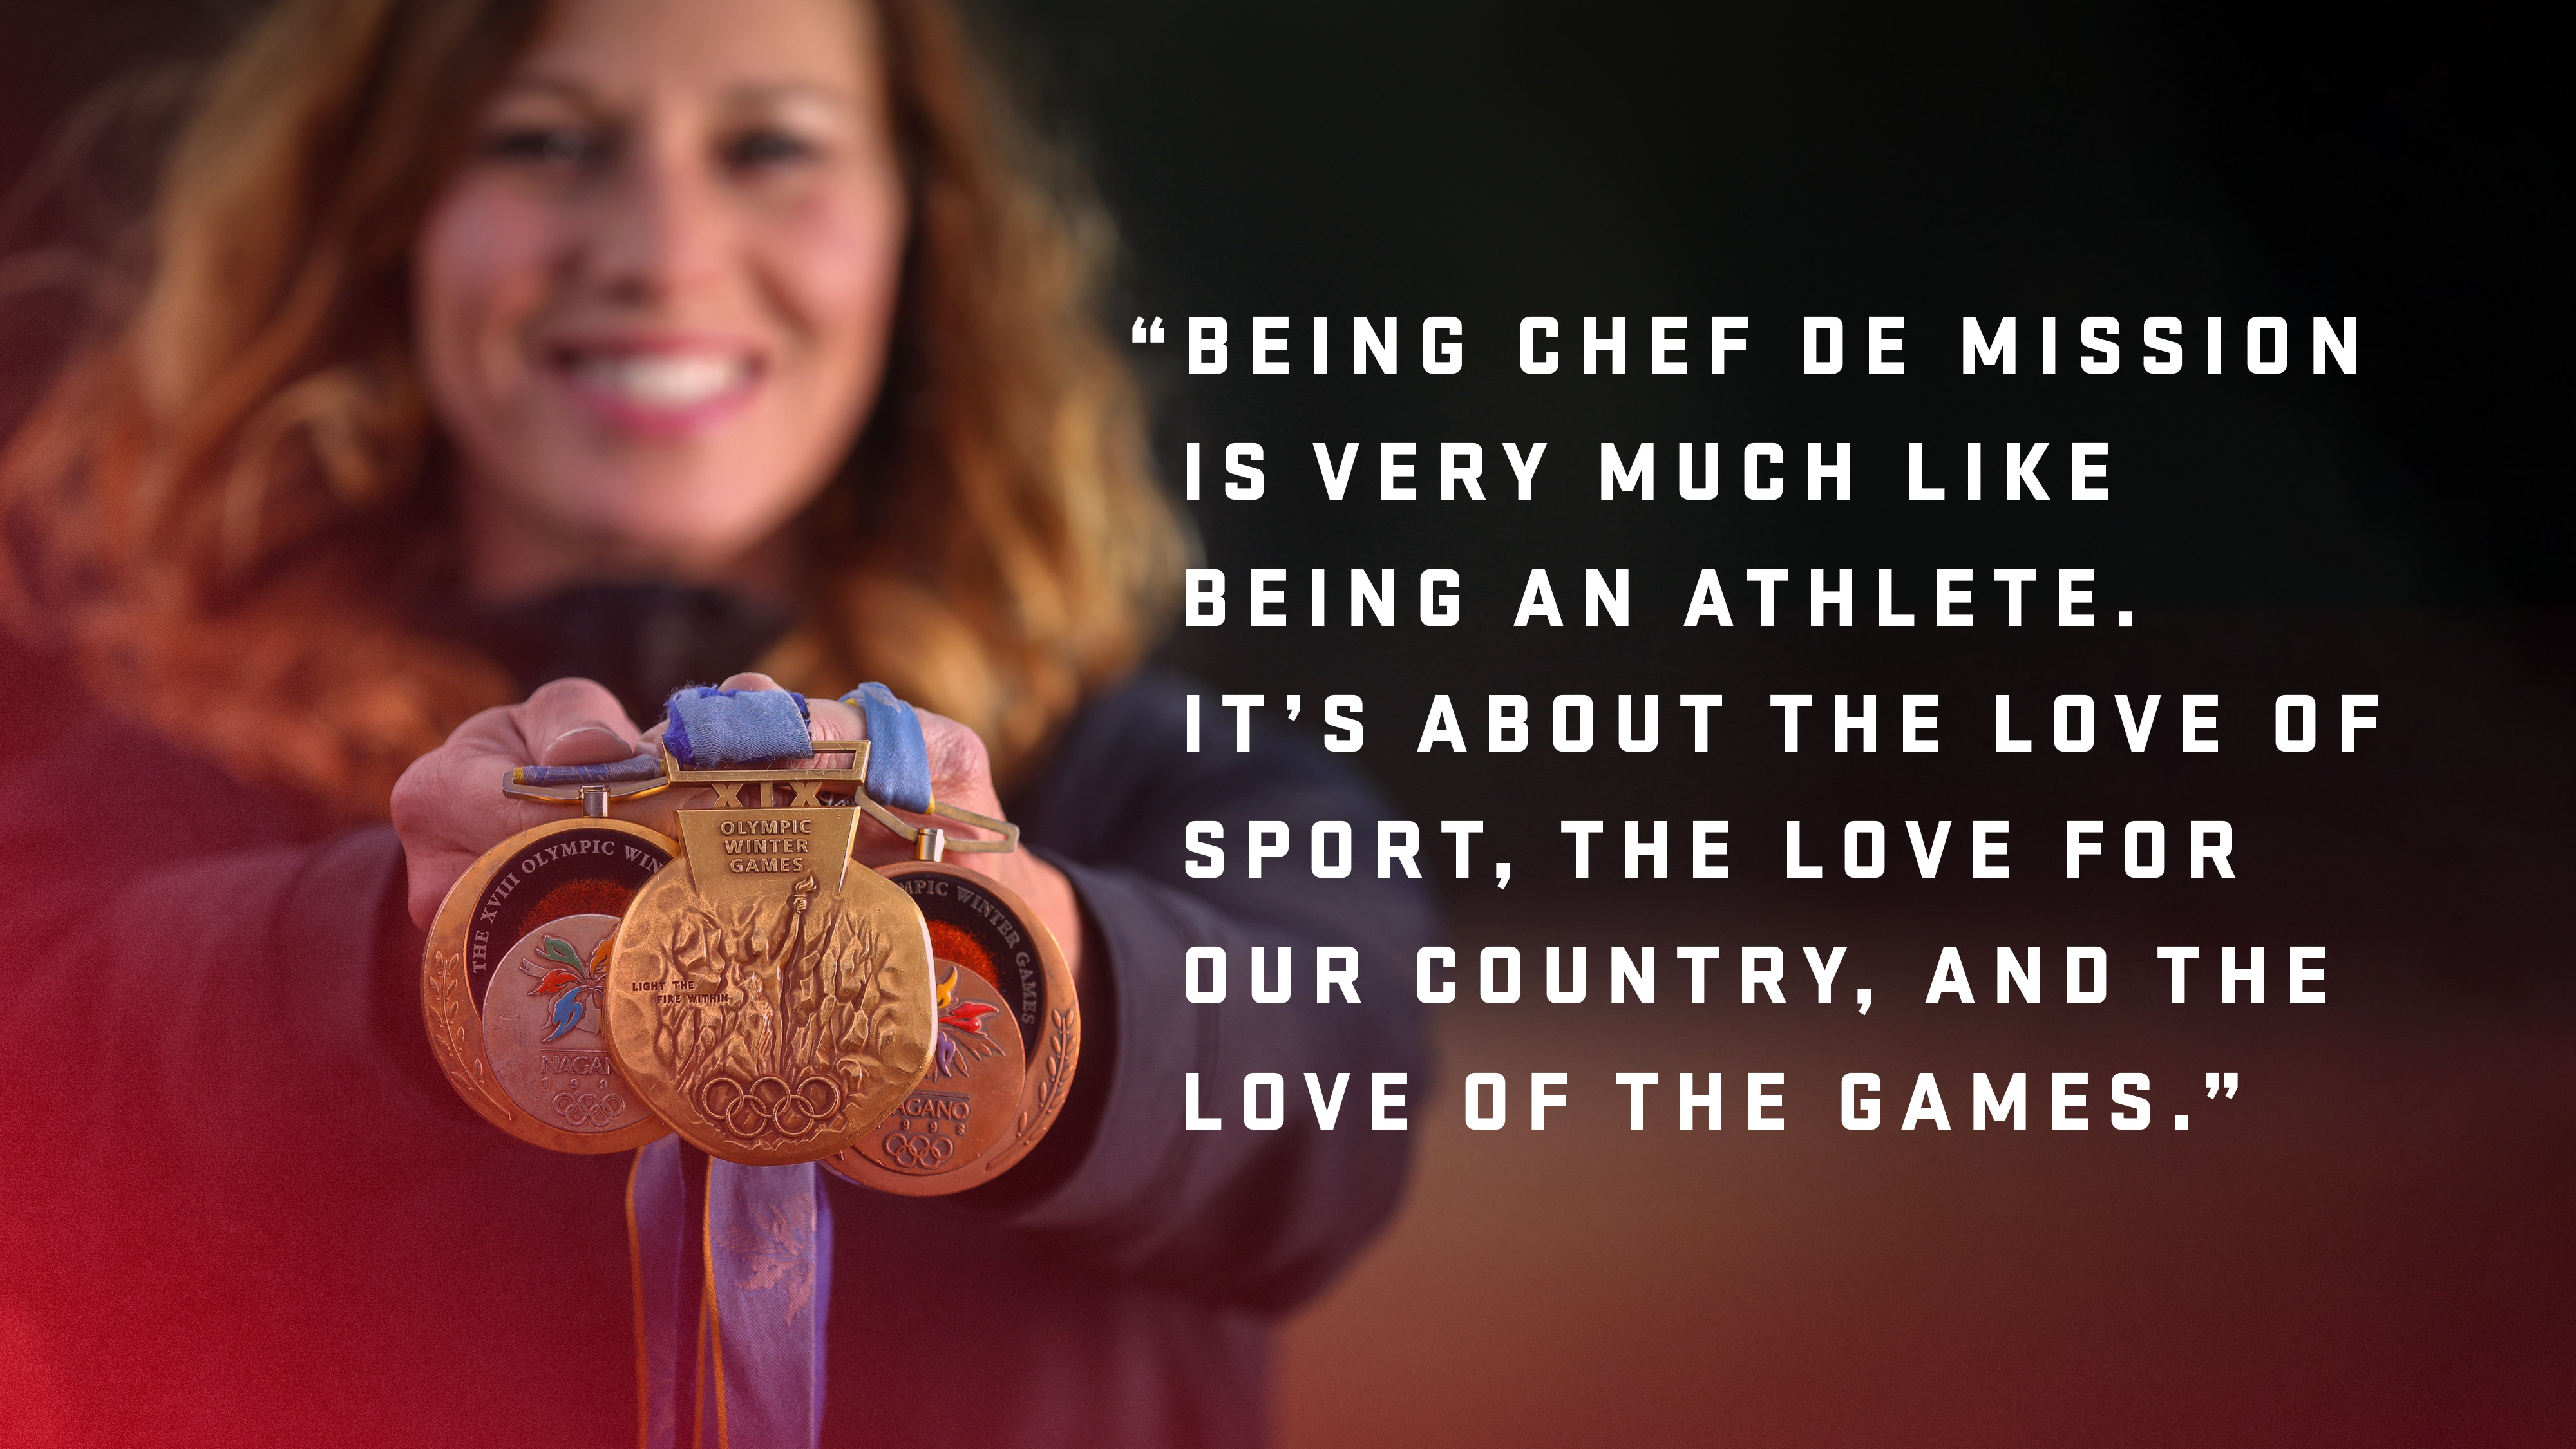 Quote: Being Chef de Mission is very much like being an athlete. It's about the love of sport, the love for our country, and the love of the Games.